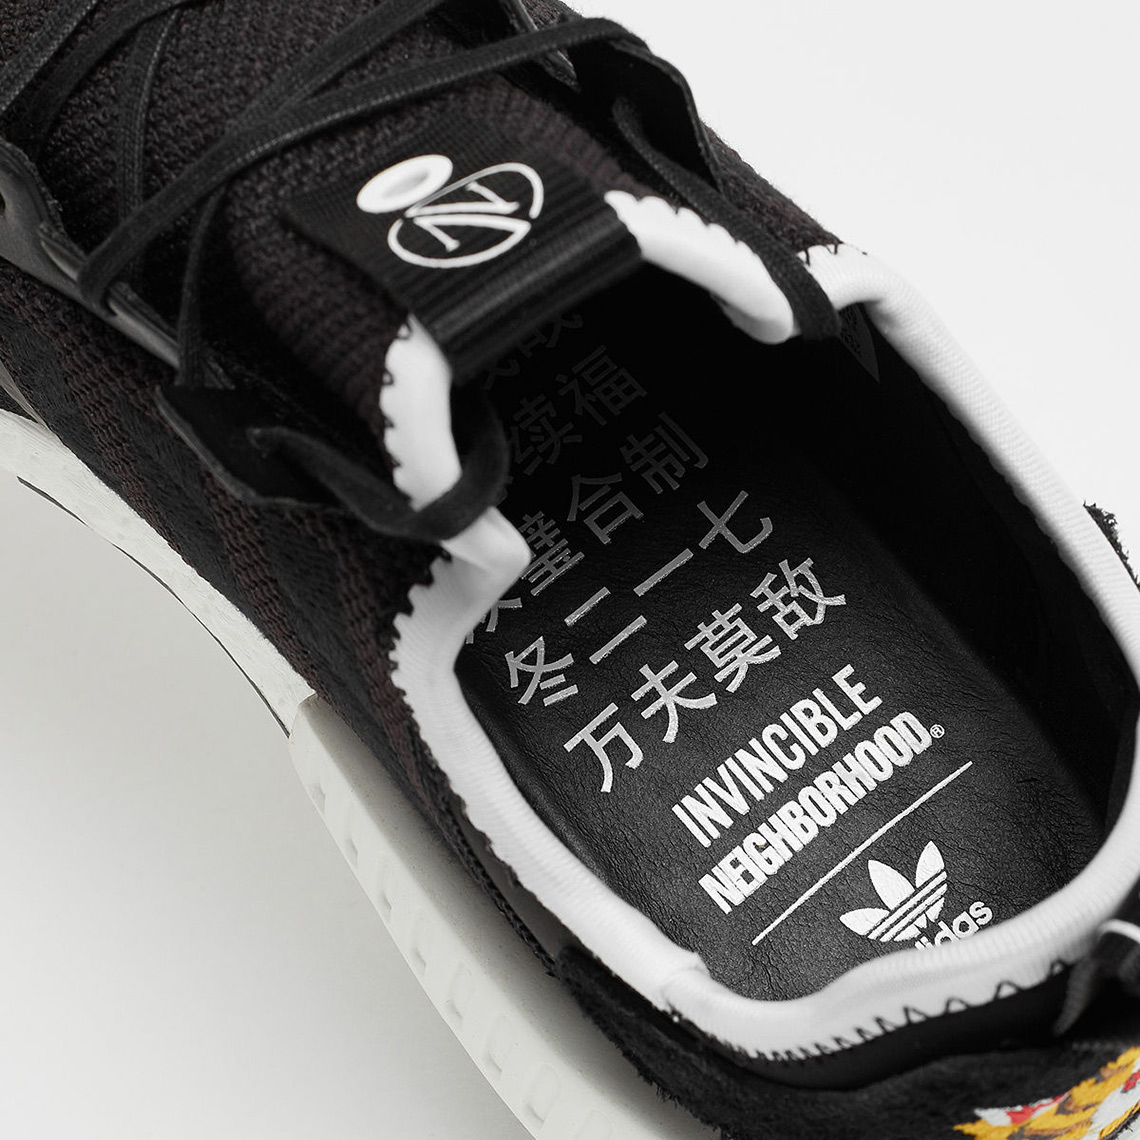 The Invincible x Neighborhood x adidas NMD R1 Releases